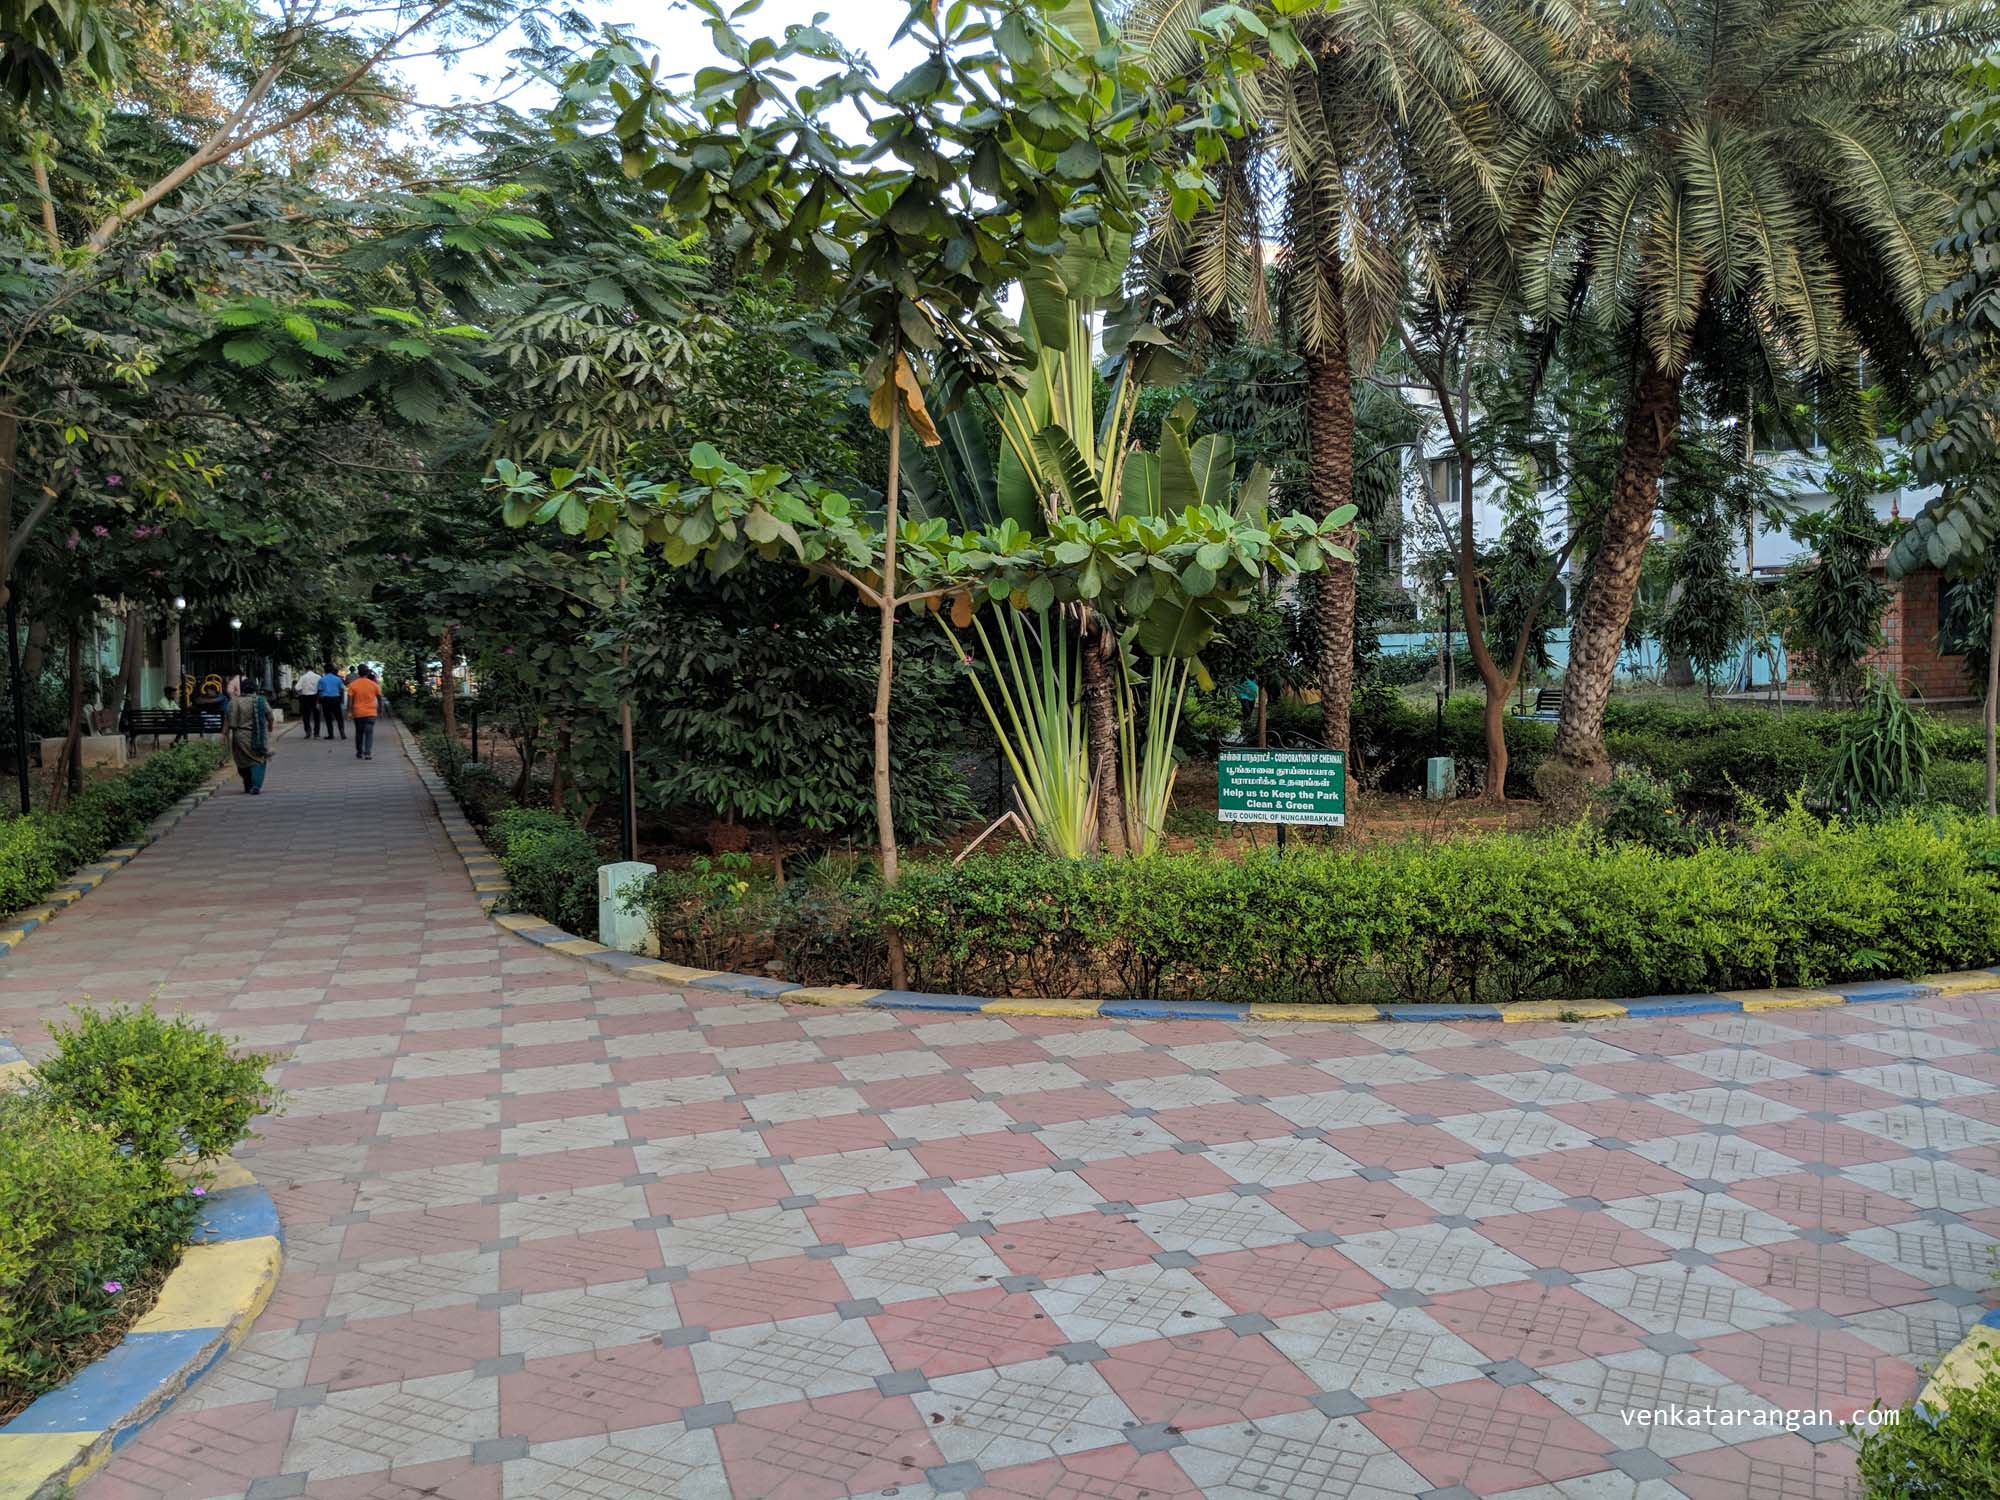 (Picture updated on 6 Mar 2018): Haddows Road Park, Chennai